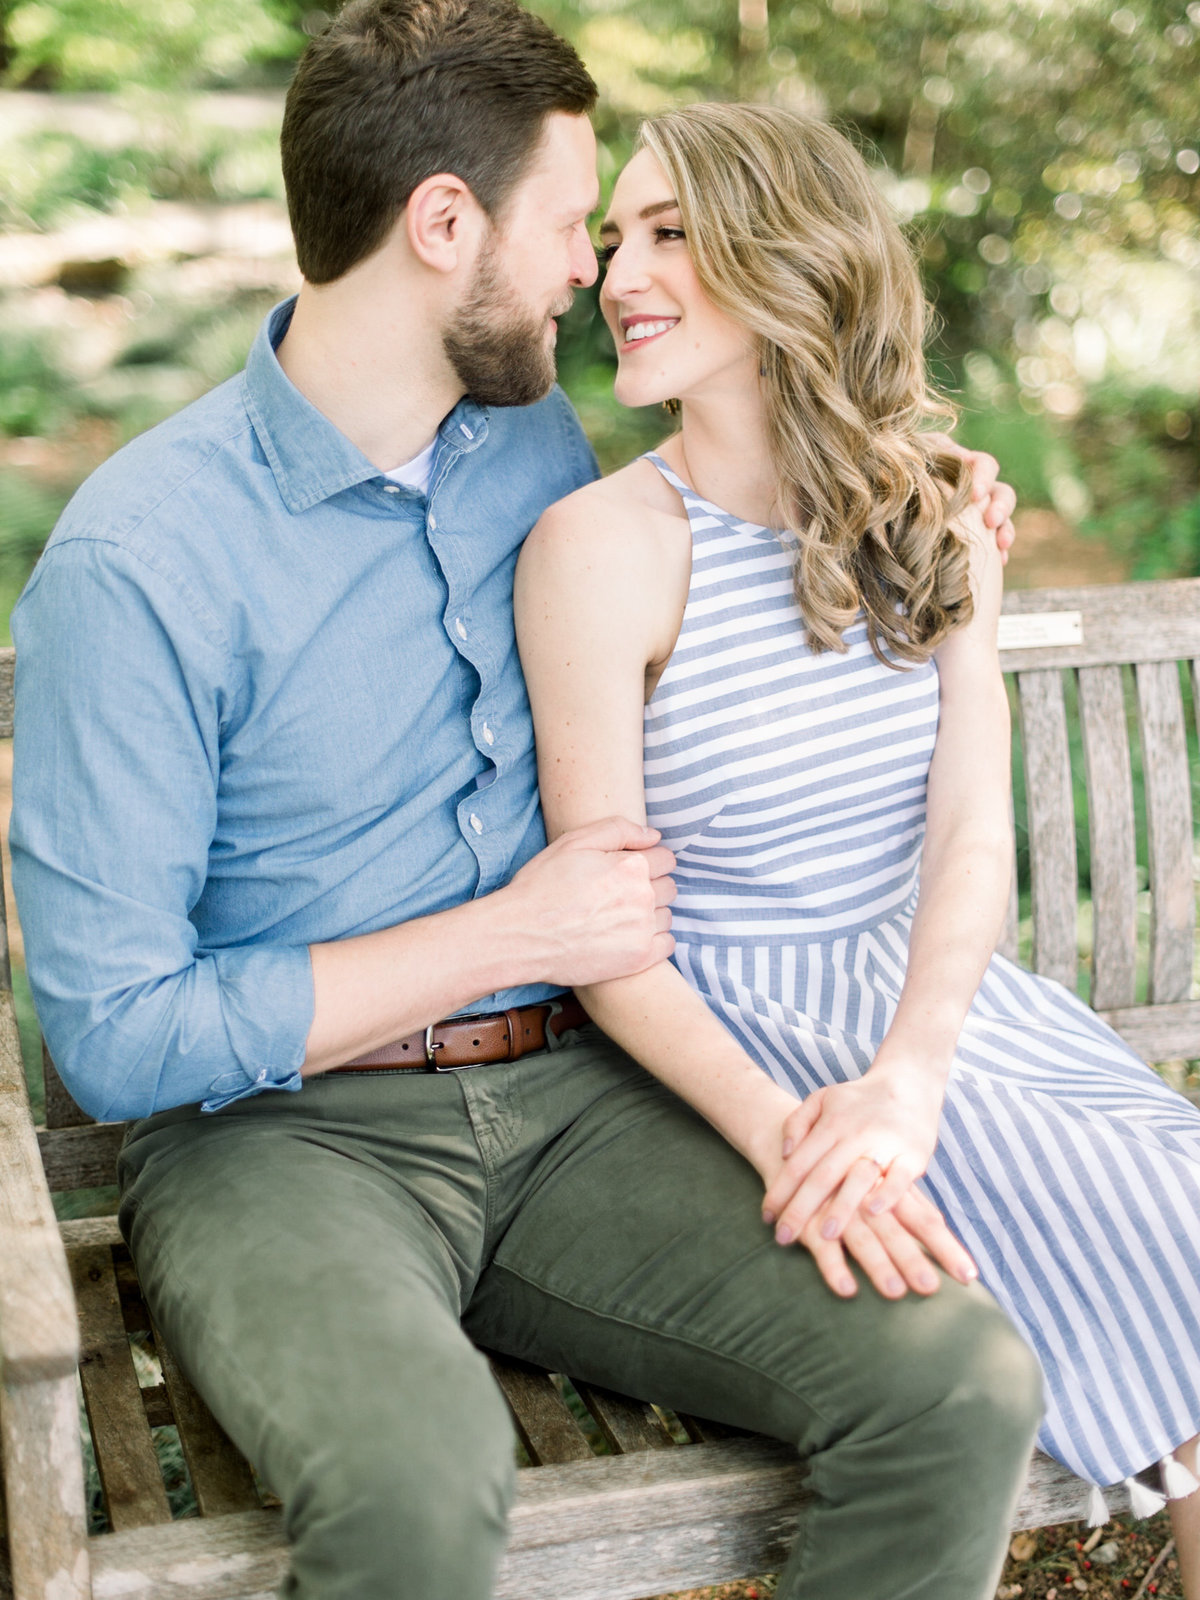 Courtney Hanson Photography - Dallas Spring Engagement Photos at Dallas Arboretum-2633